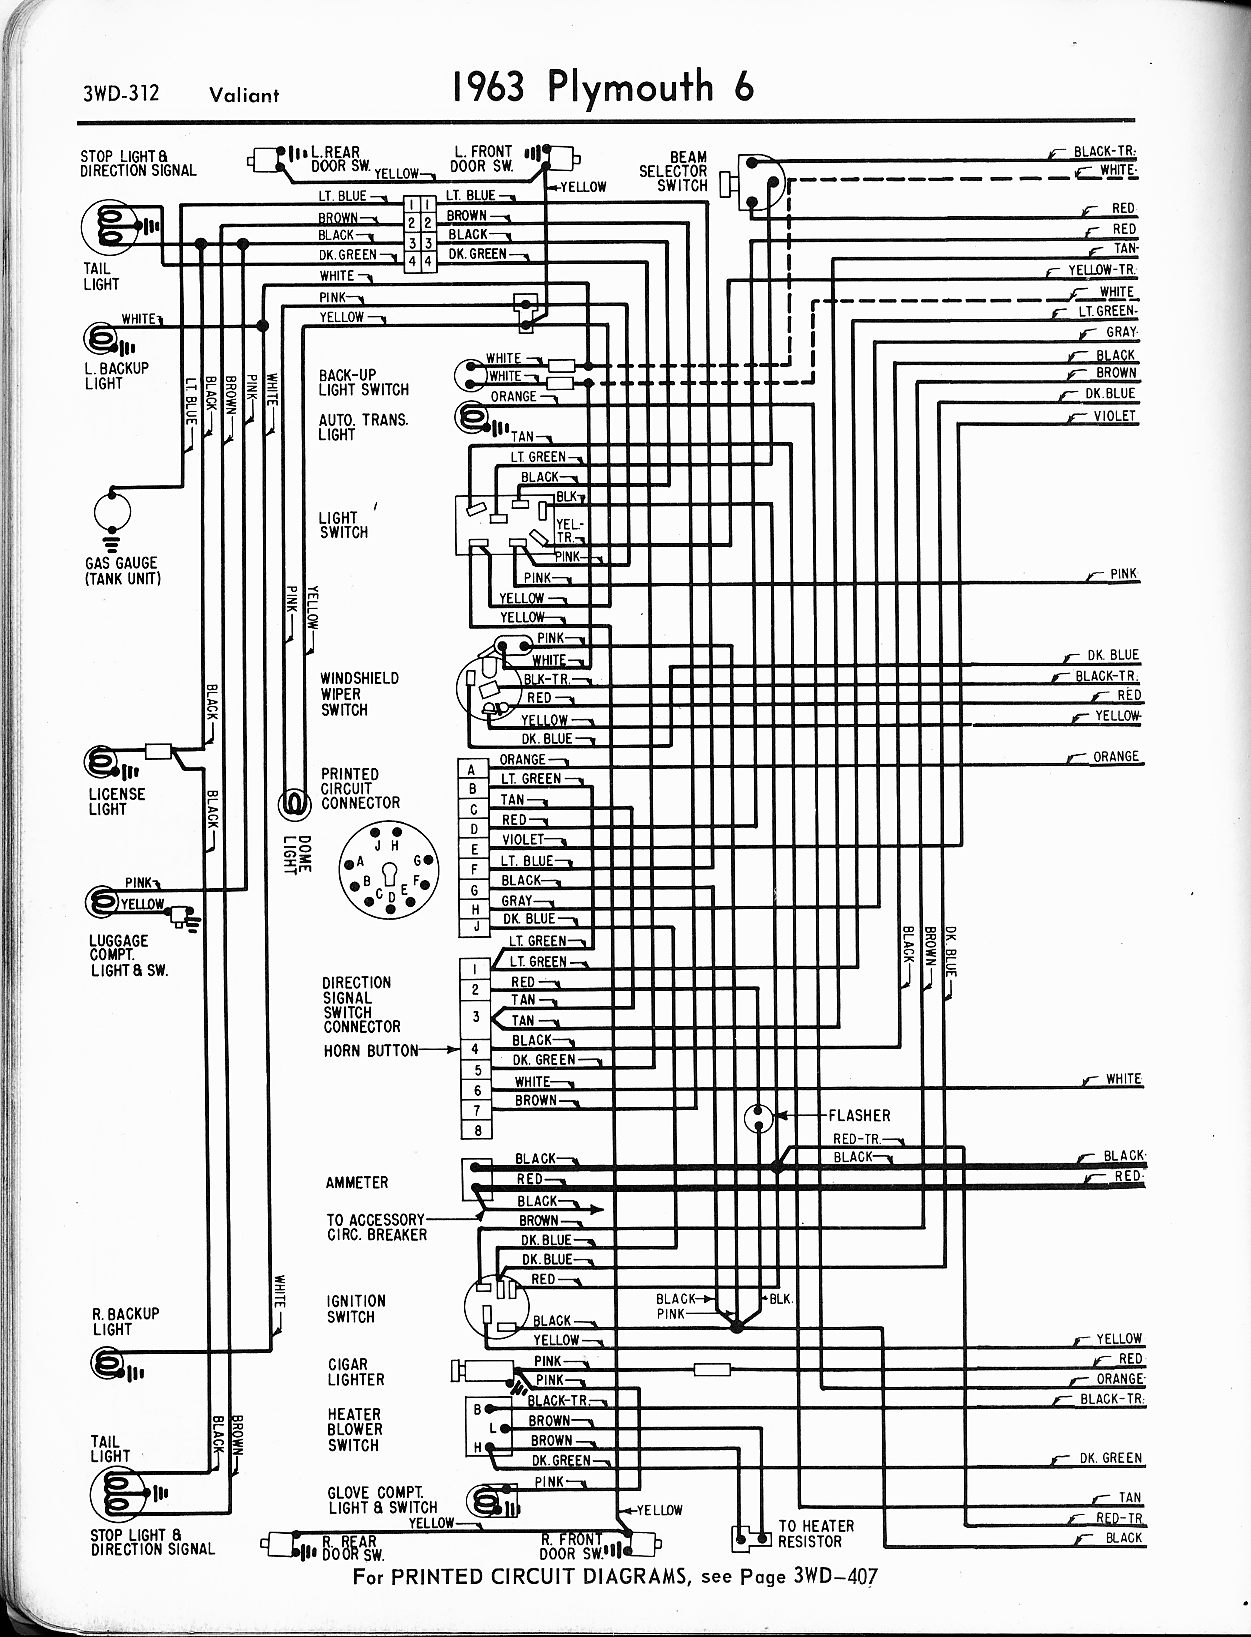 1967 barracuda engine wiring diagram 1967 barracuda engine wiring diagram | better wiring ...